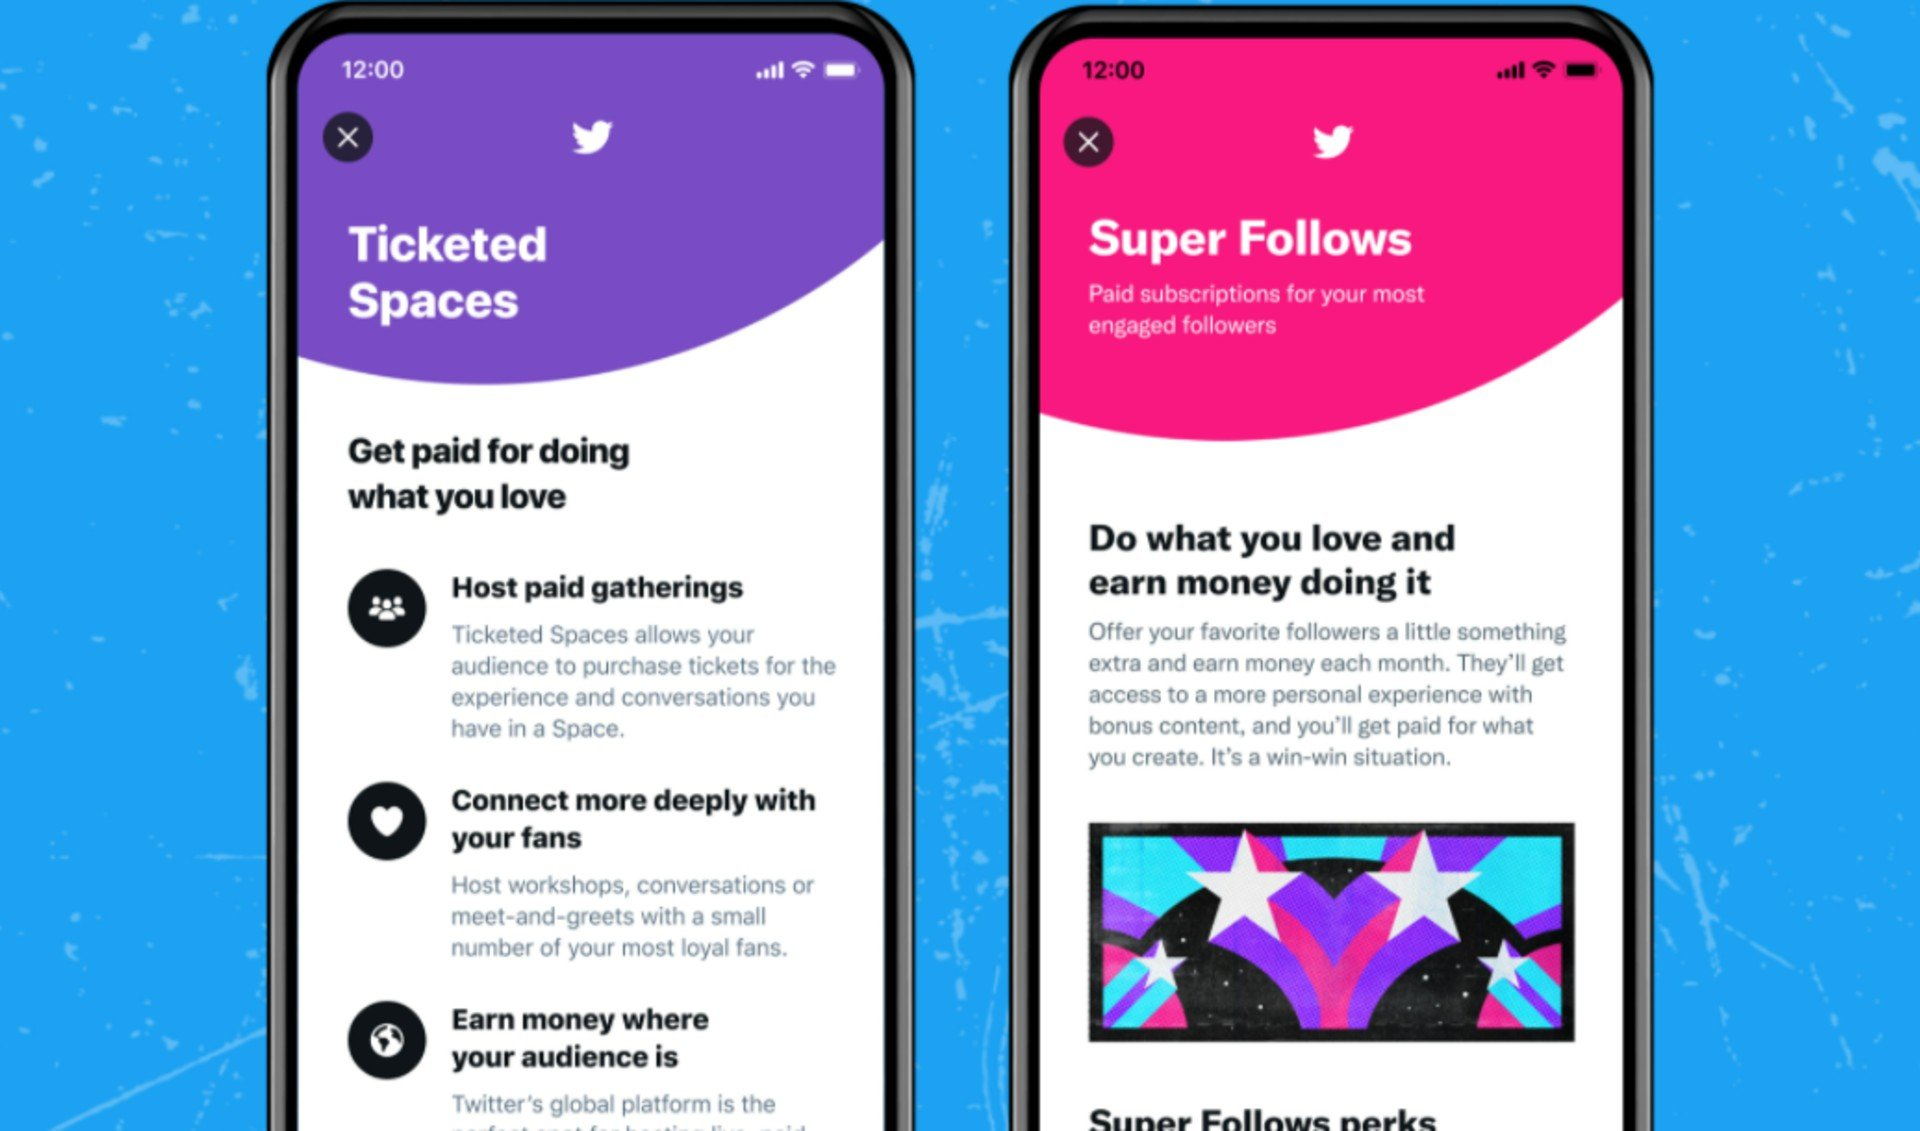 Twitter To Let Creators Keep 97% Of Revenues From Super Follows, Ticketed Spaces -- Until They Surpass $50,000 - Tubefilter